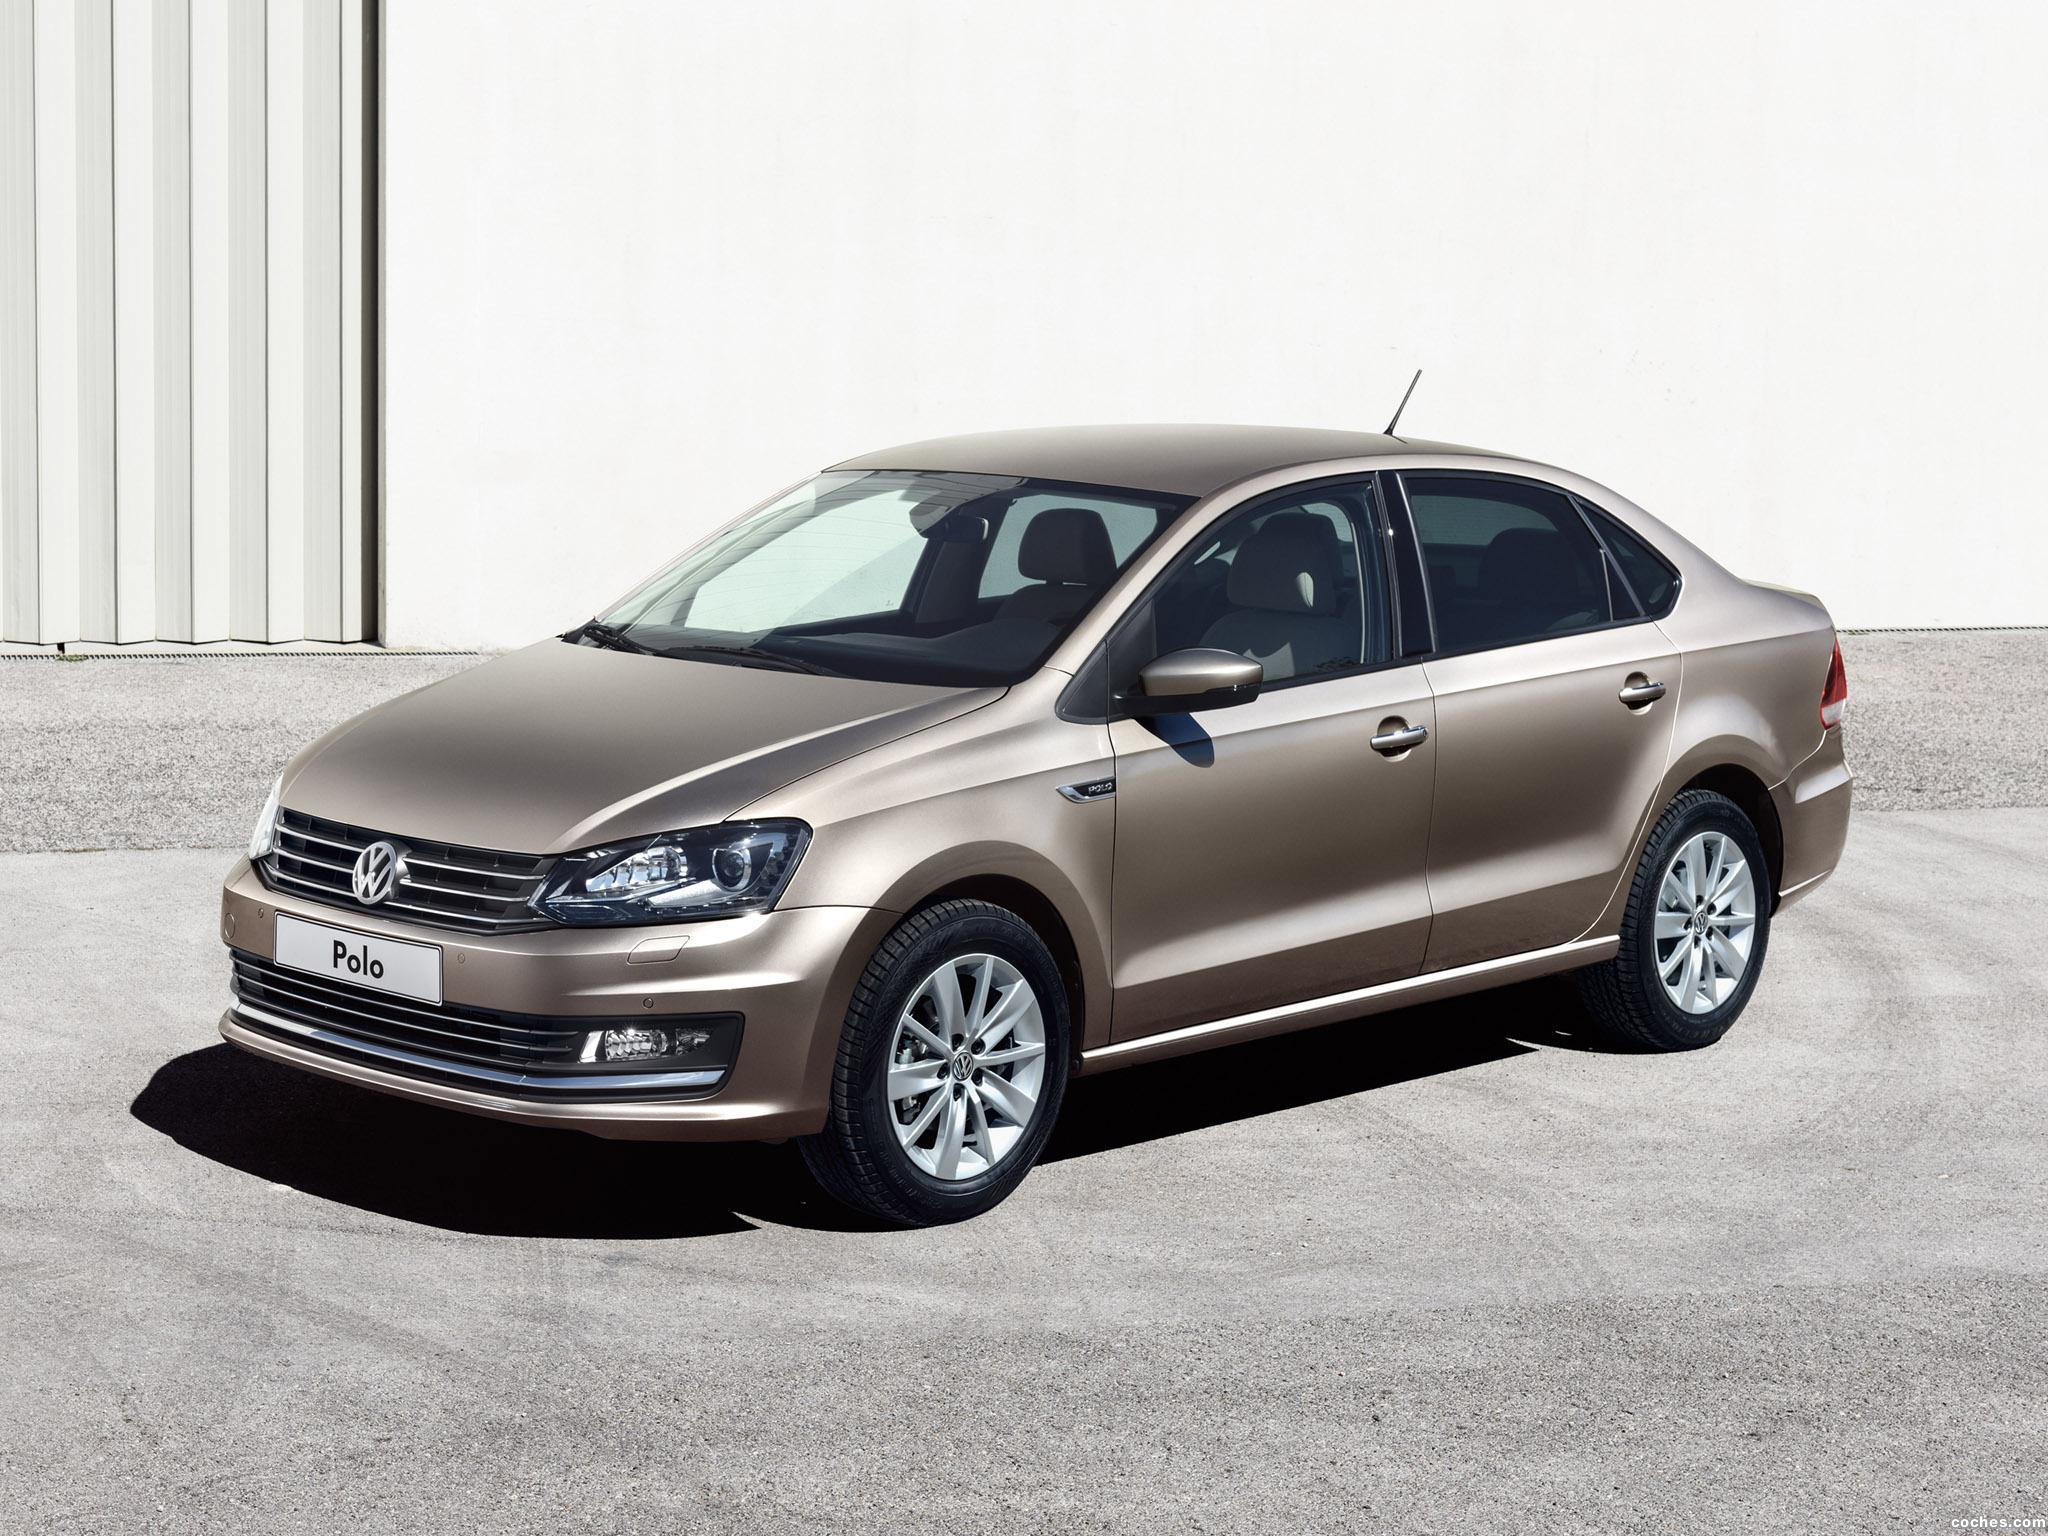 Foto 3 de Volkswagen Polo Sedan 2015